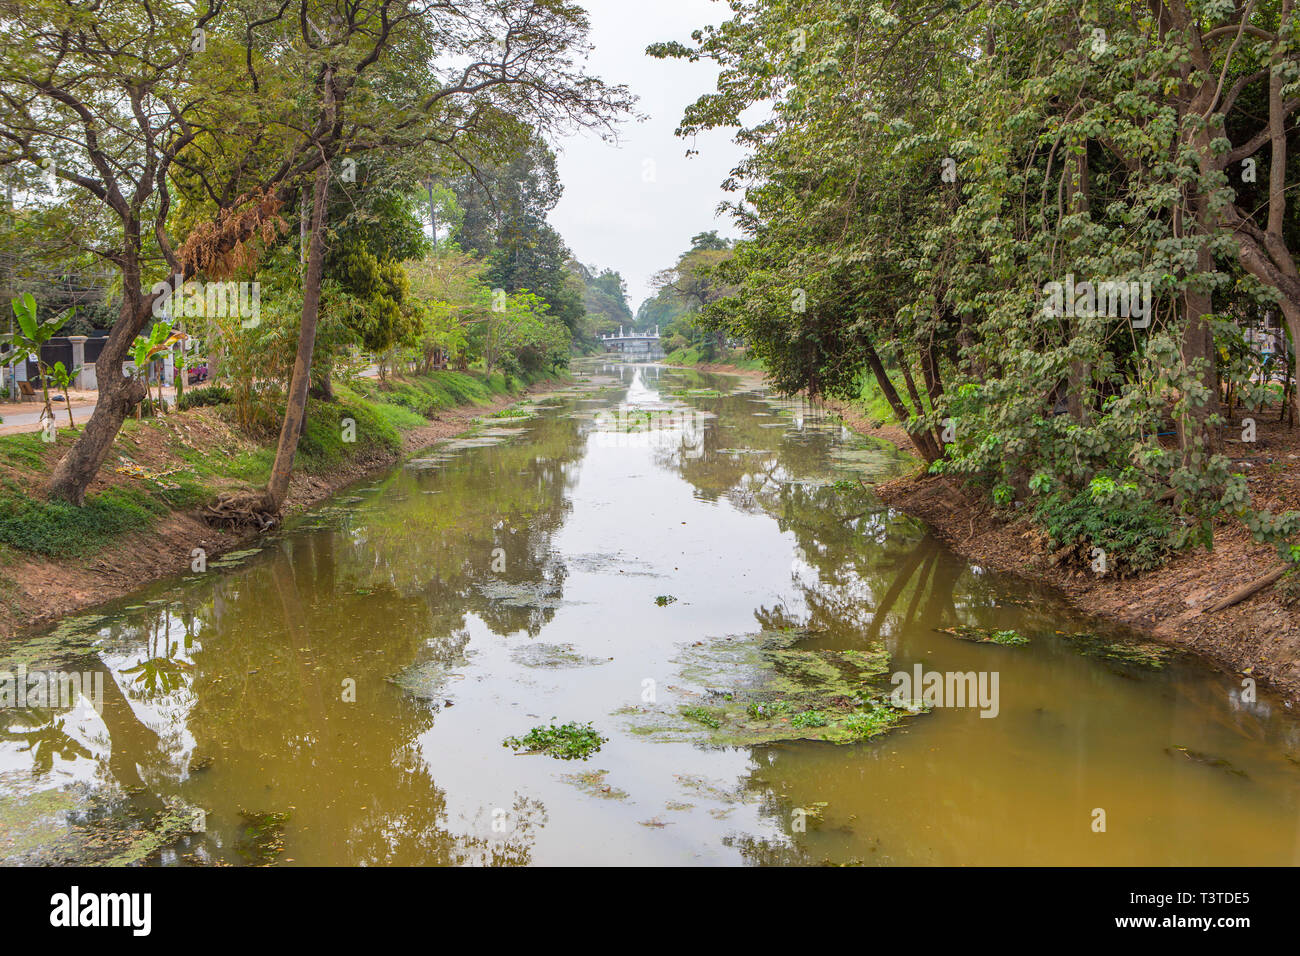 Siem Reap River, Cambodia - Stock Image